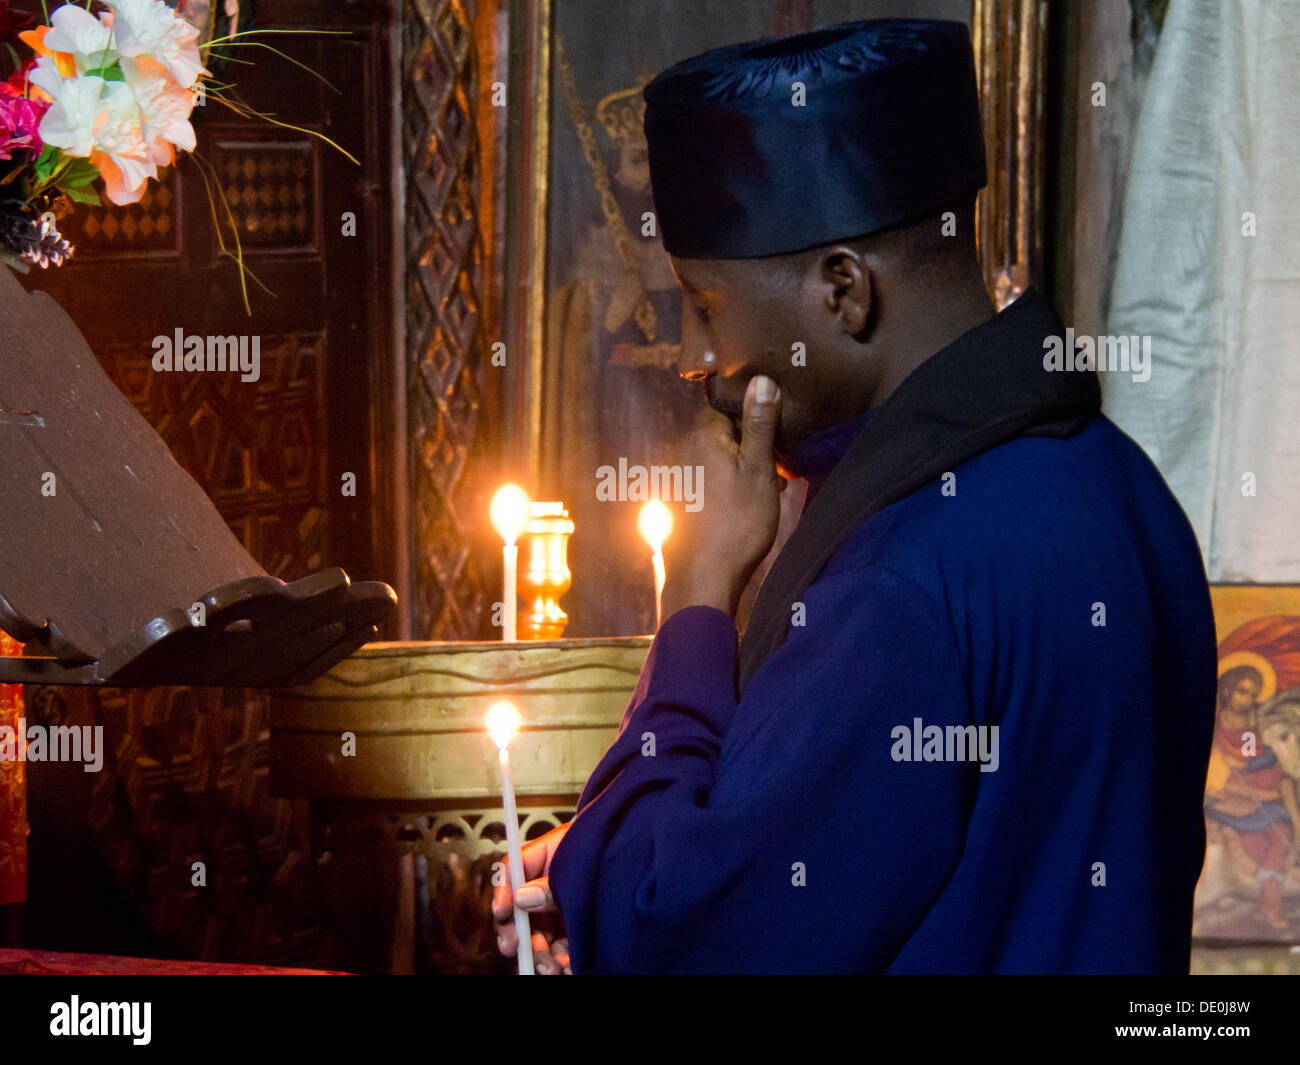 An Ethiopian priest in prayer in the Ethiopian Church adjacent to the Church of the Holy Sepulchre. Although legislation describes Israel as a 'Jewish' state it also provides for freedom of worship which is respected in practice. - Stock Image